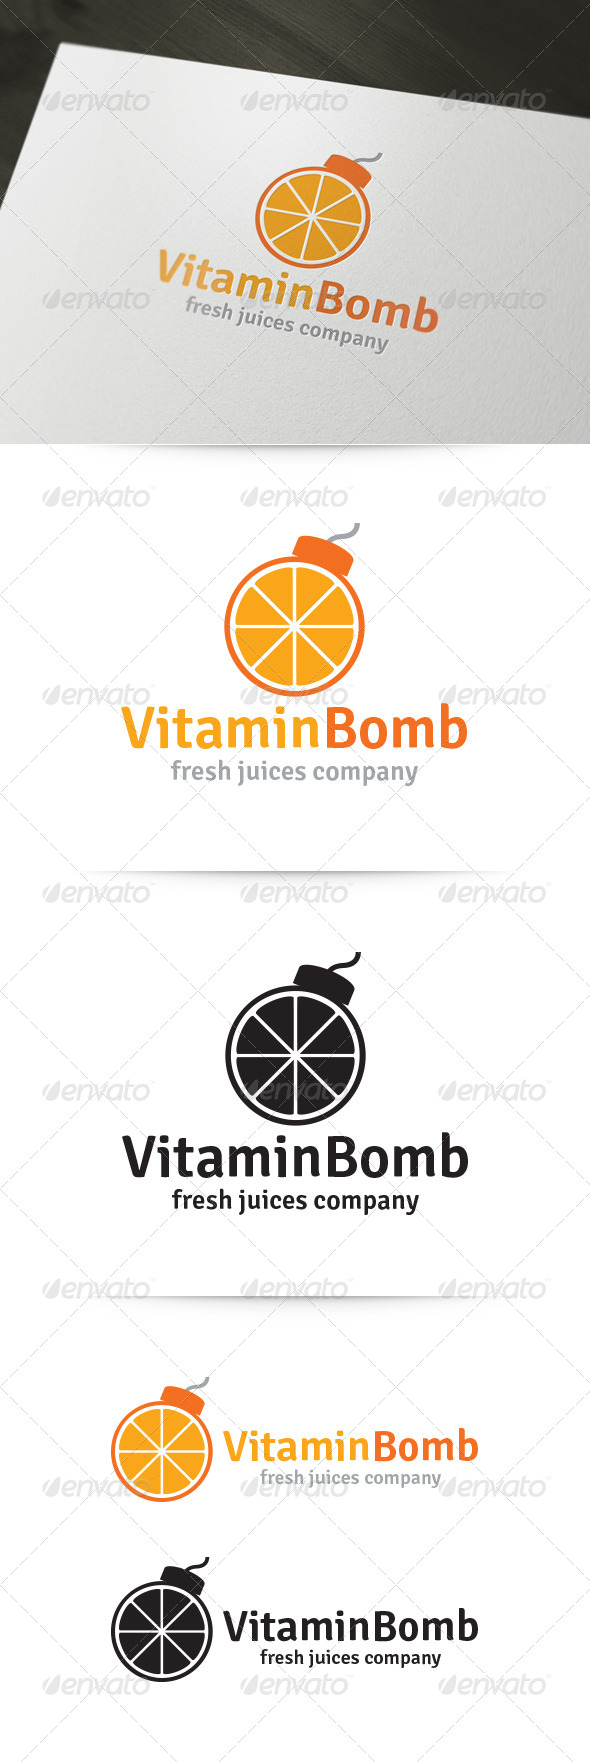 GraphicRiver Vitamin Bomb Logo 5914179